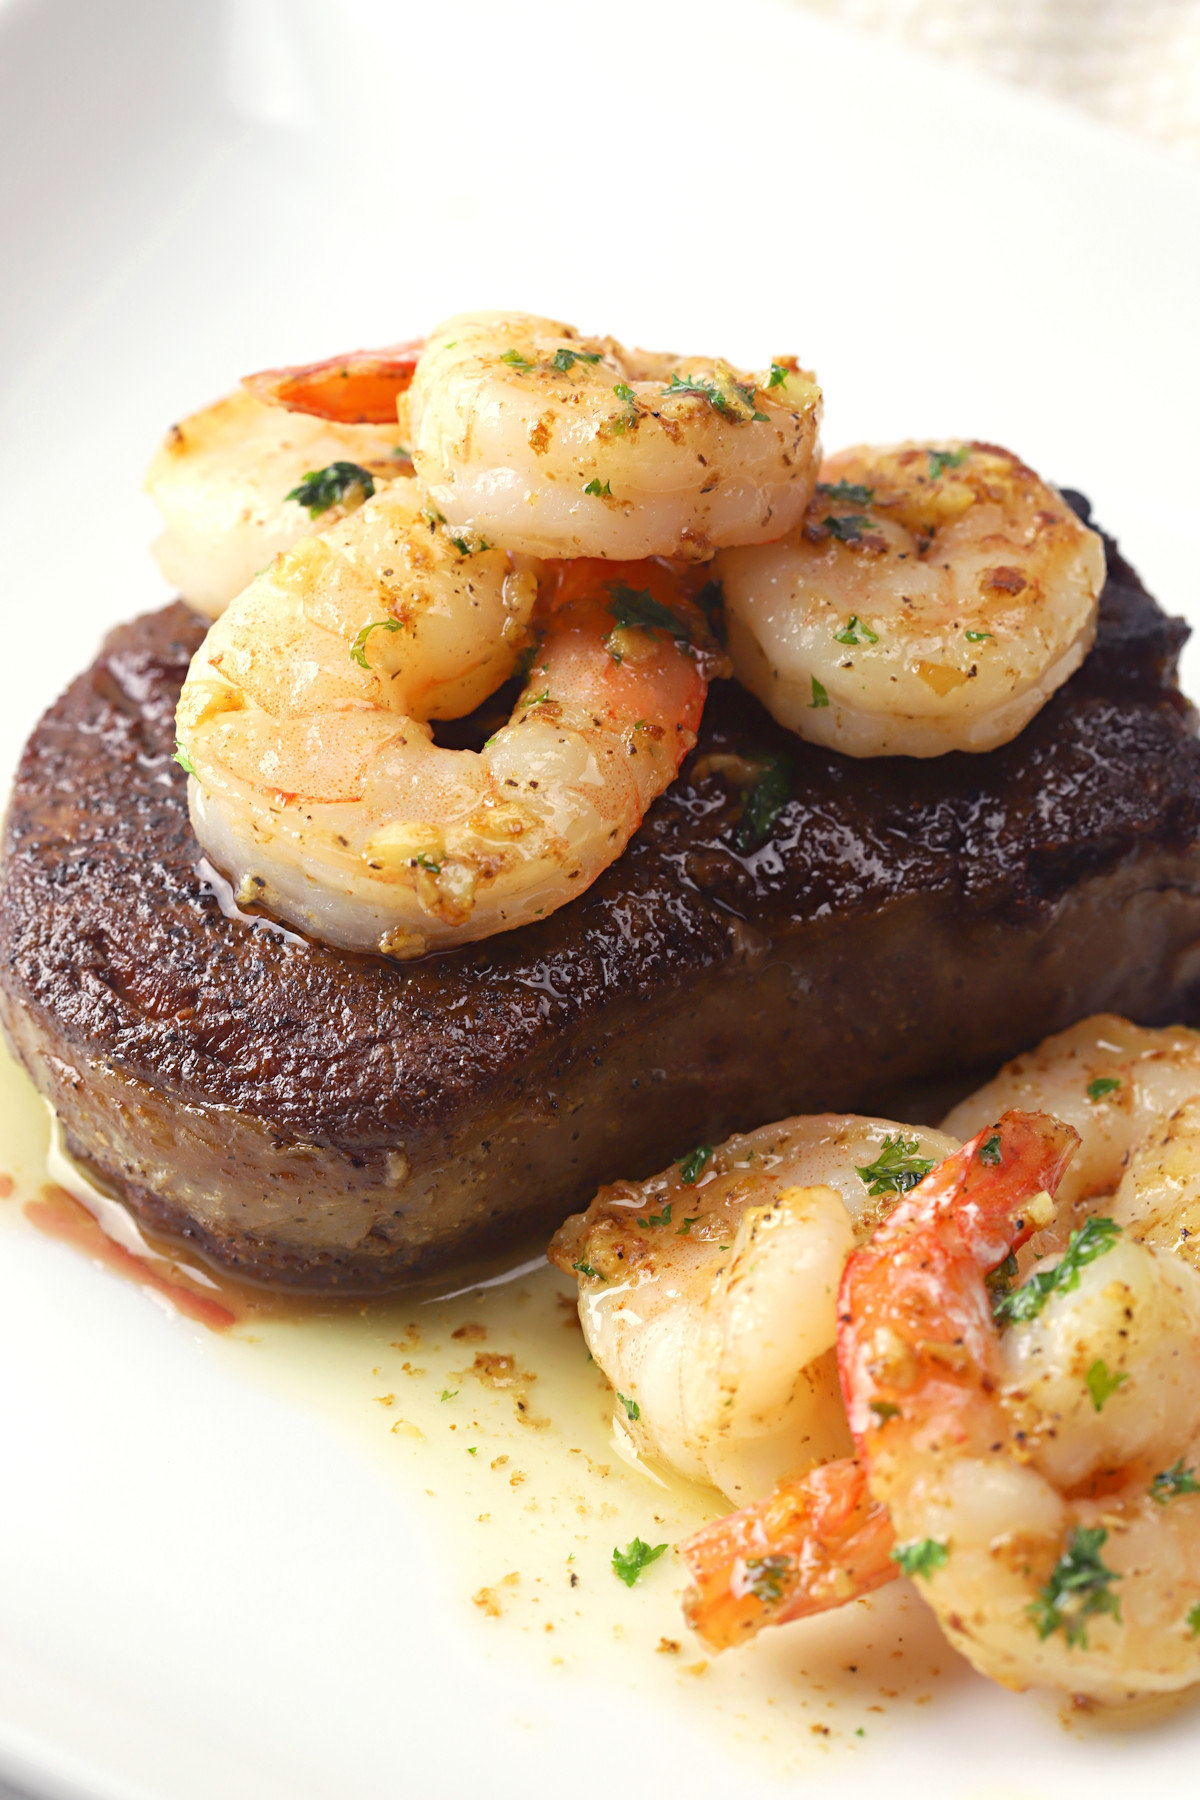 Filet mignon on a white plate, topped with shrimp.